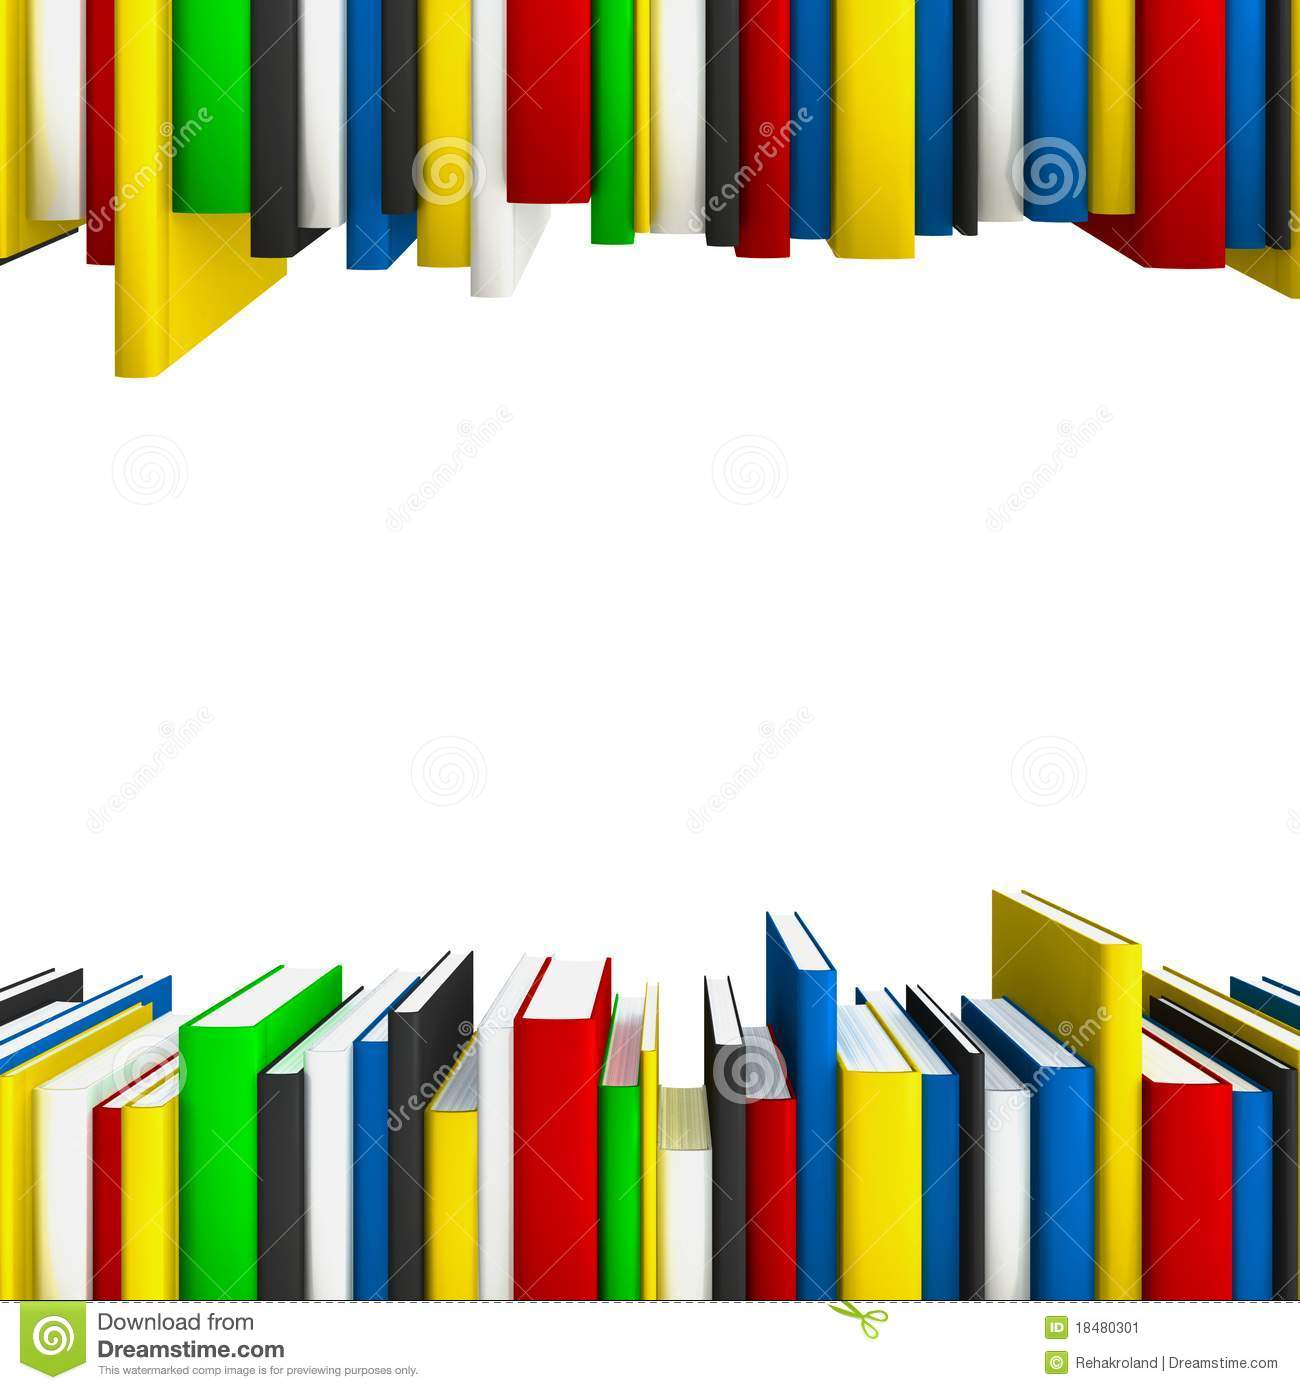 Book Rows As Frame Stock Image - Image: 18480301